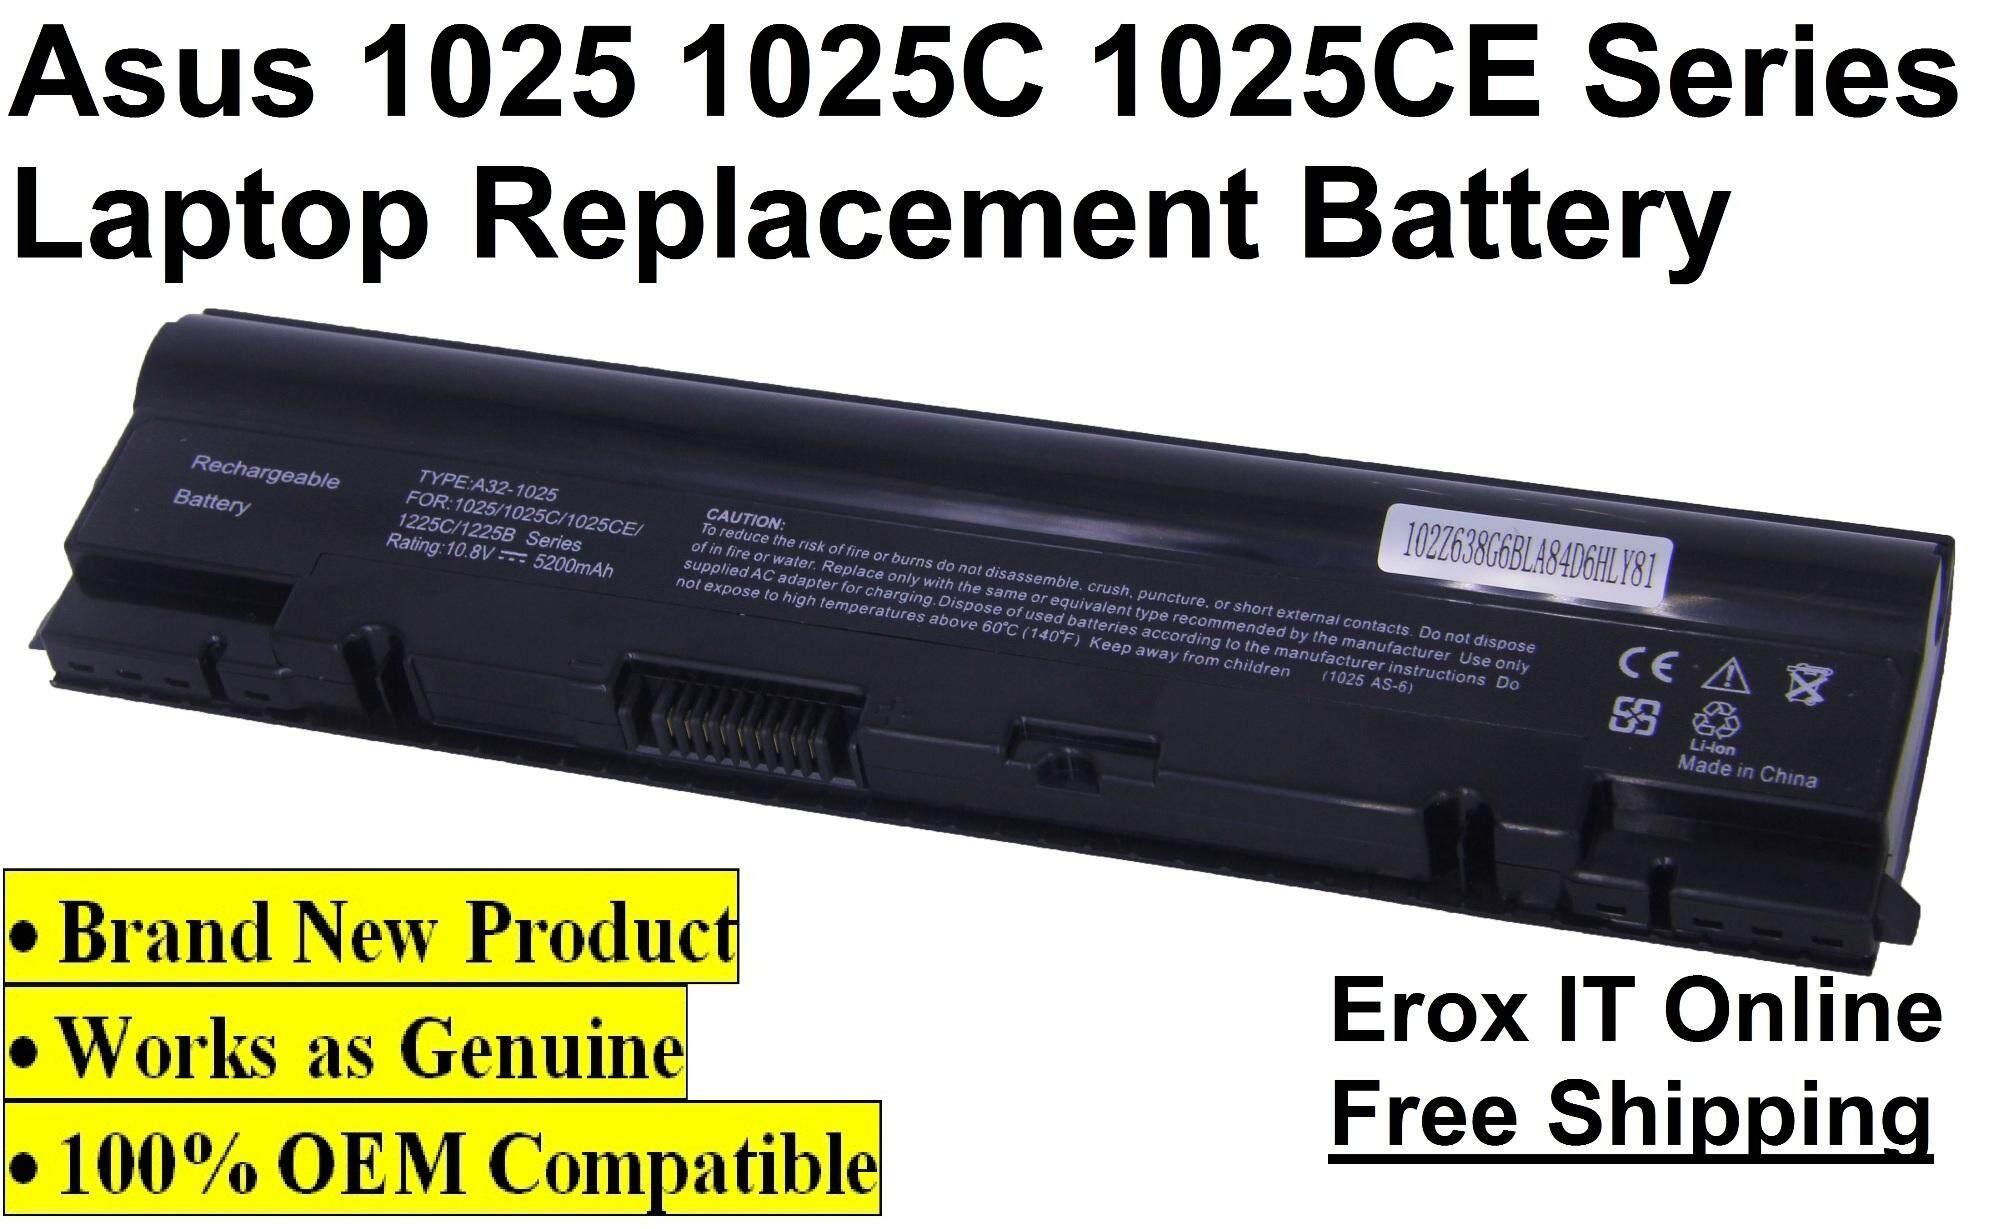 (1 Year Warranty) Replacement Laptop Battery for Asus 1025C /Asus 1225 Laptop Battery (1 Year Warranty) Malaysia